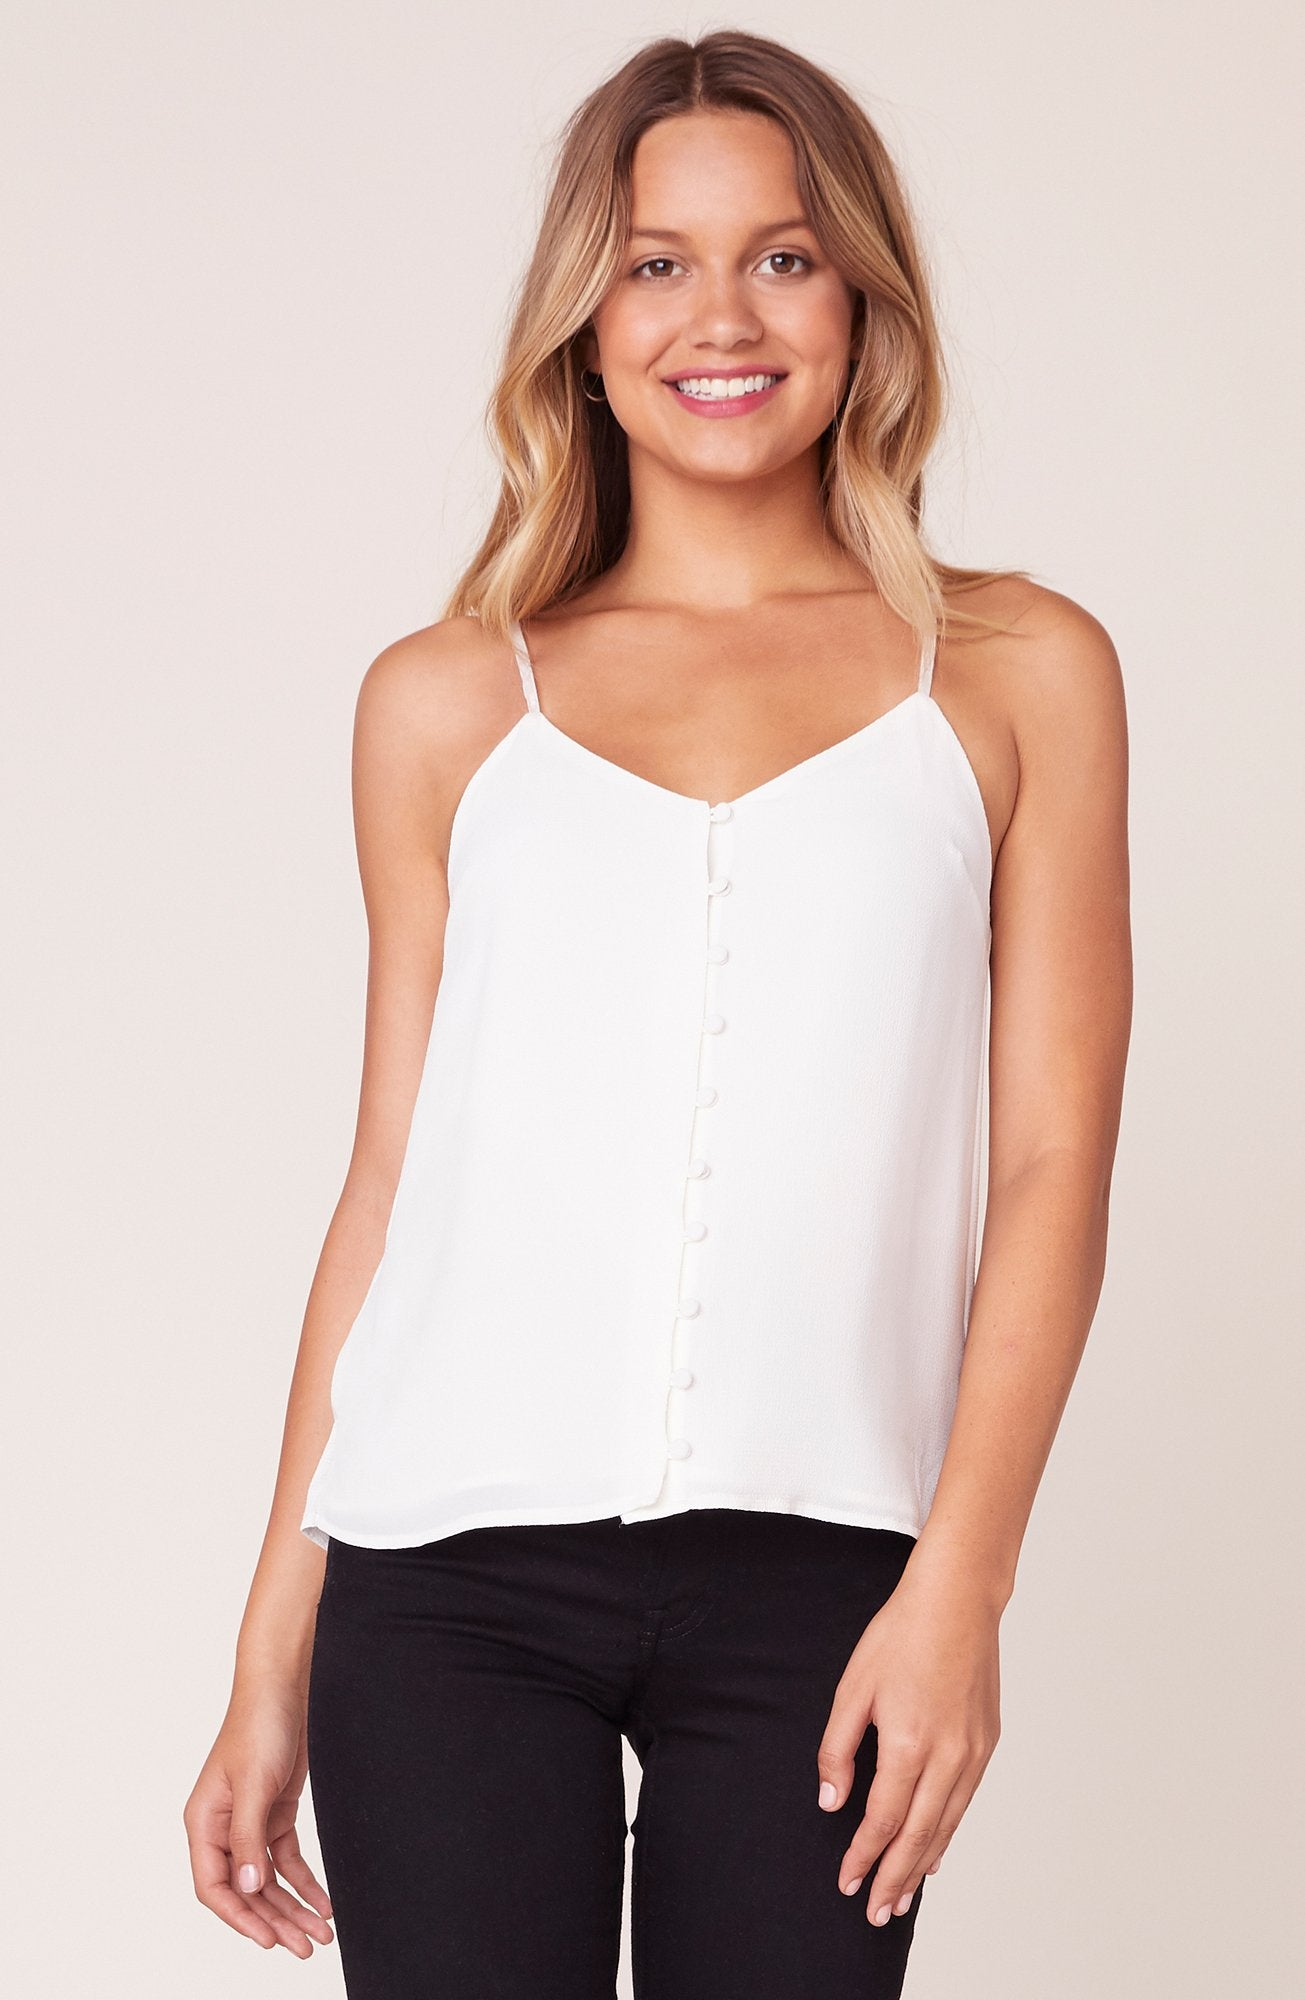 CRAZY LITTLE THING VELVET TRIM TOP (click for more colors)